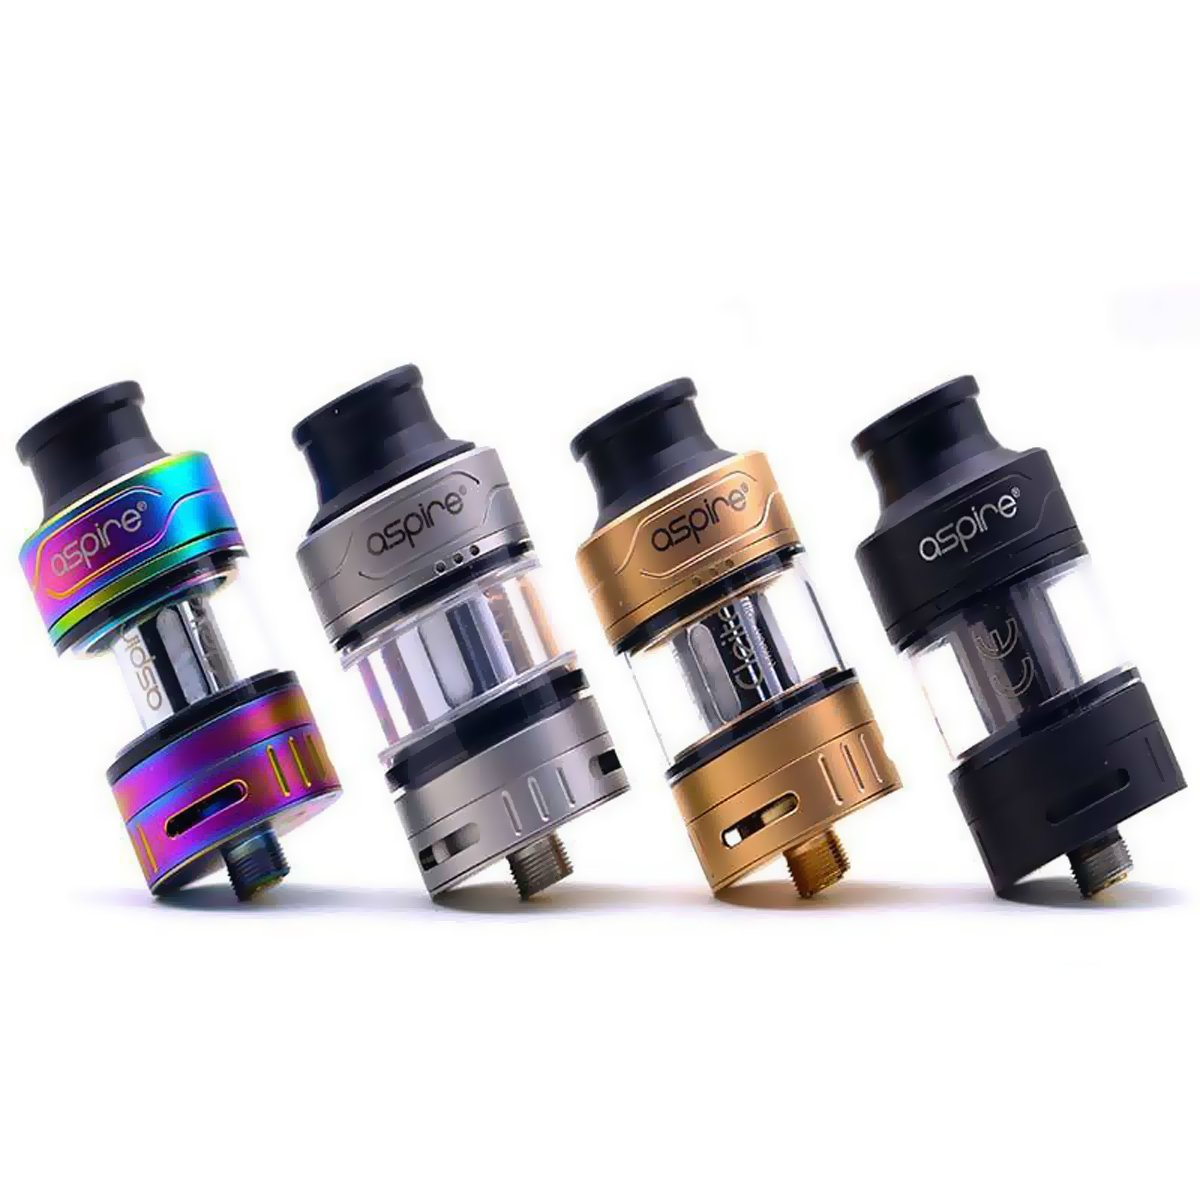 Aspire Cleito Pro 24mm 3ML Tank